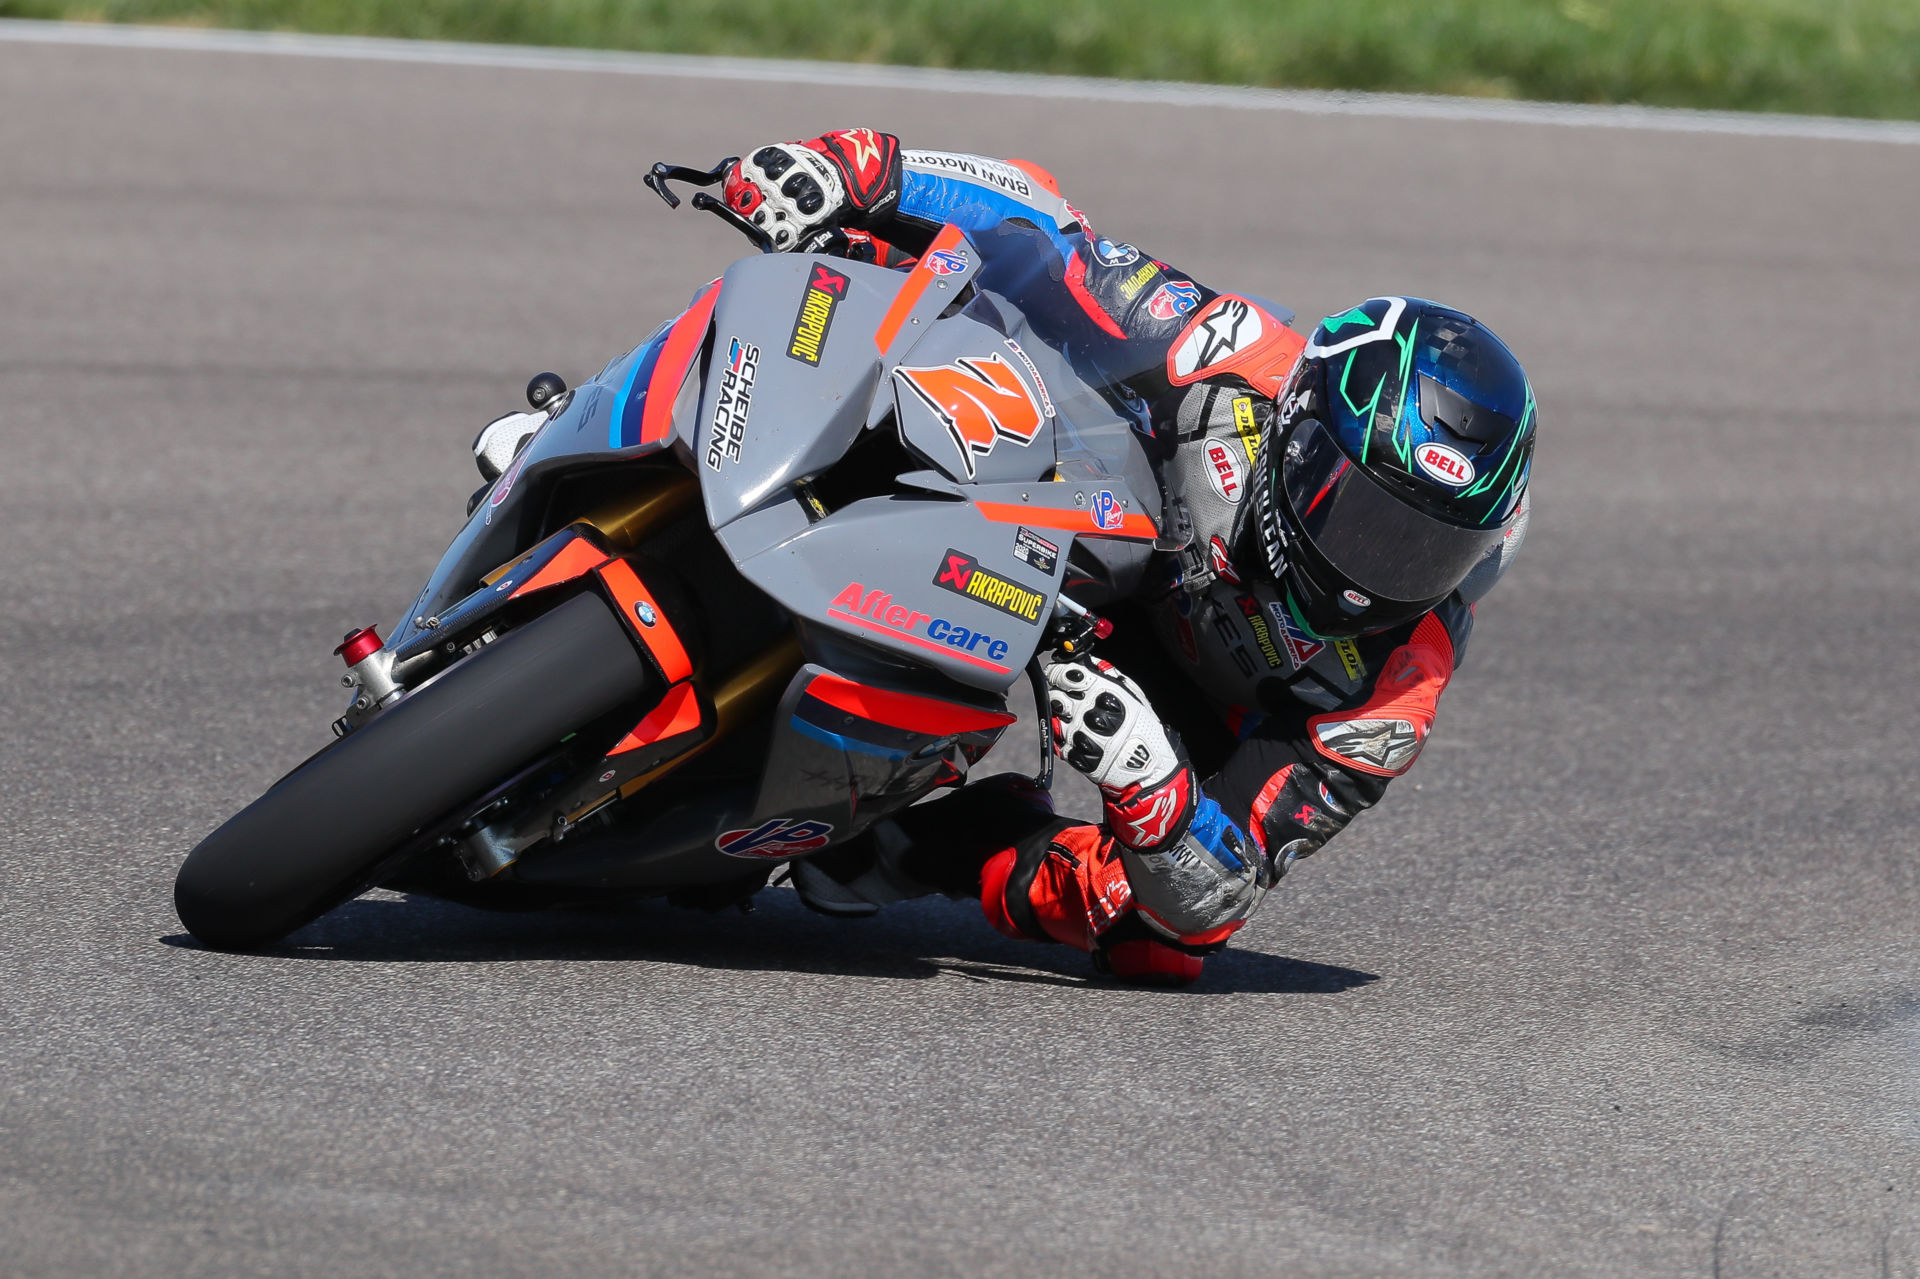 Josh Herrin (2) leaned over on his Scheibe Racing BMW S1000RR MotoAmerica Superbike at Indianapolis Motor Speedway. Photo by Brian J. Nelson.